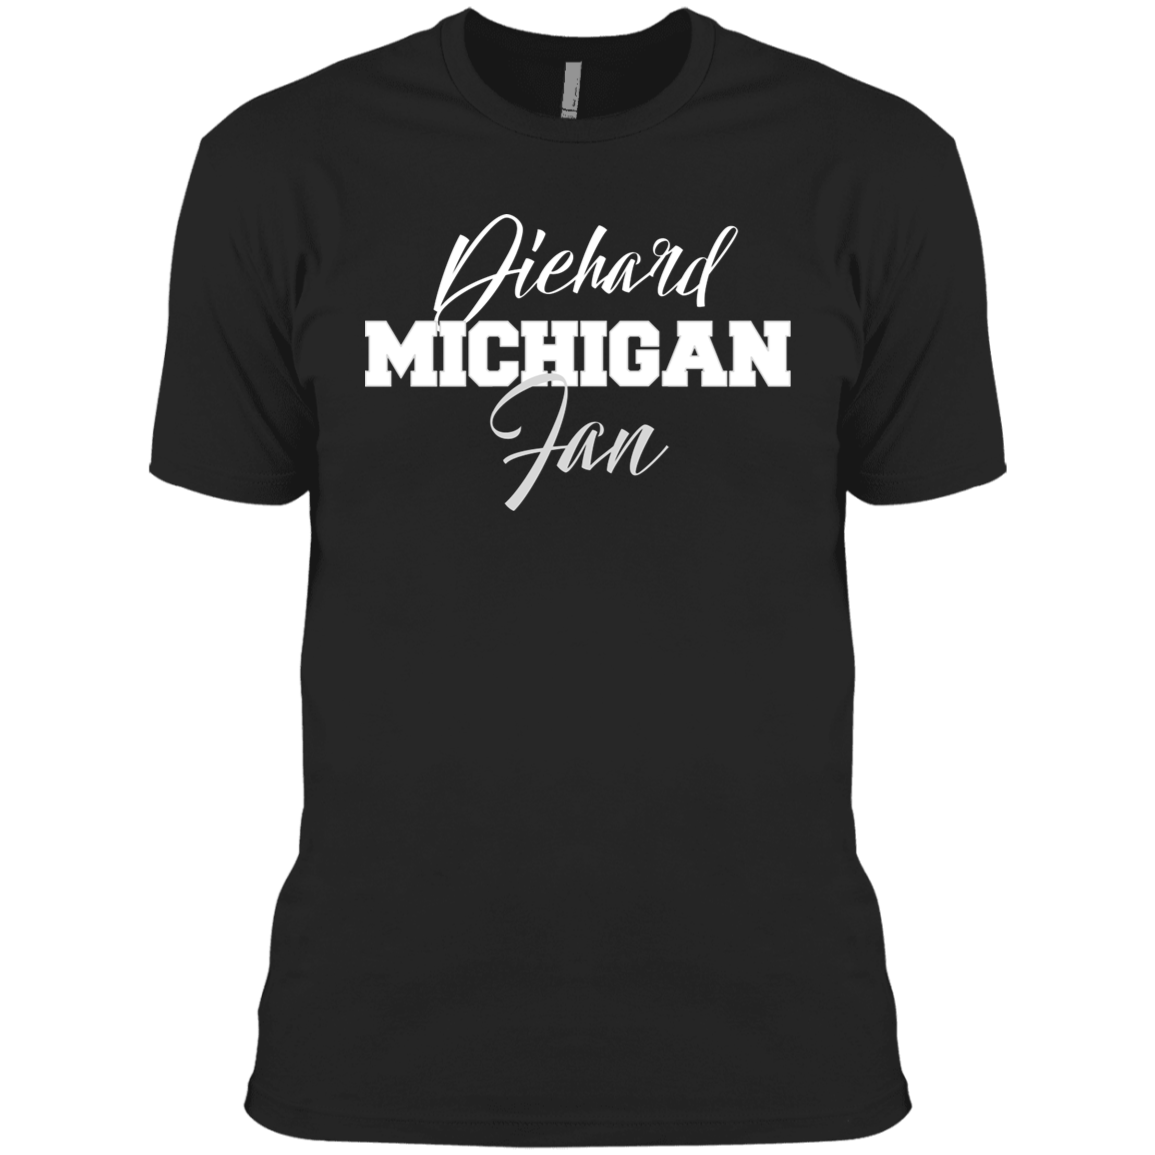 Michigan Next Level Men's Made in USA Cotton T-Shirt